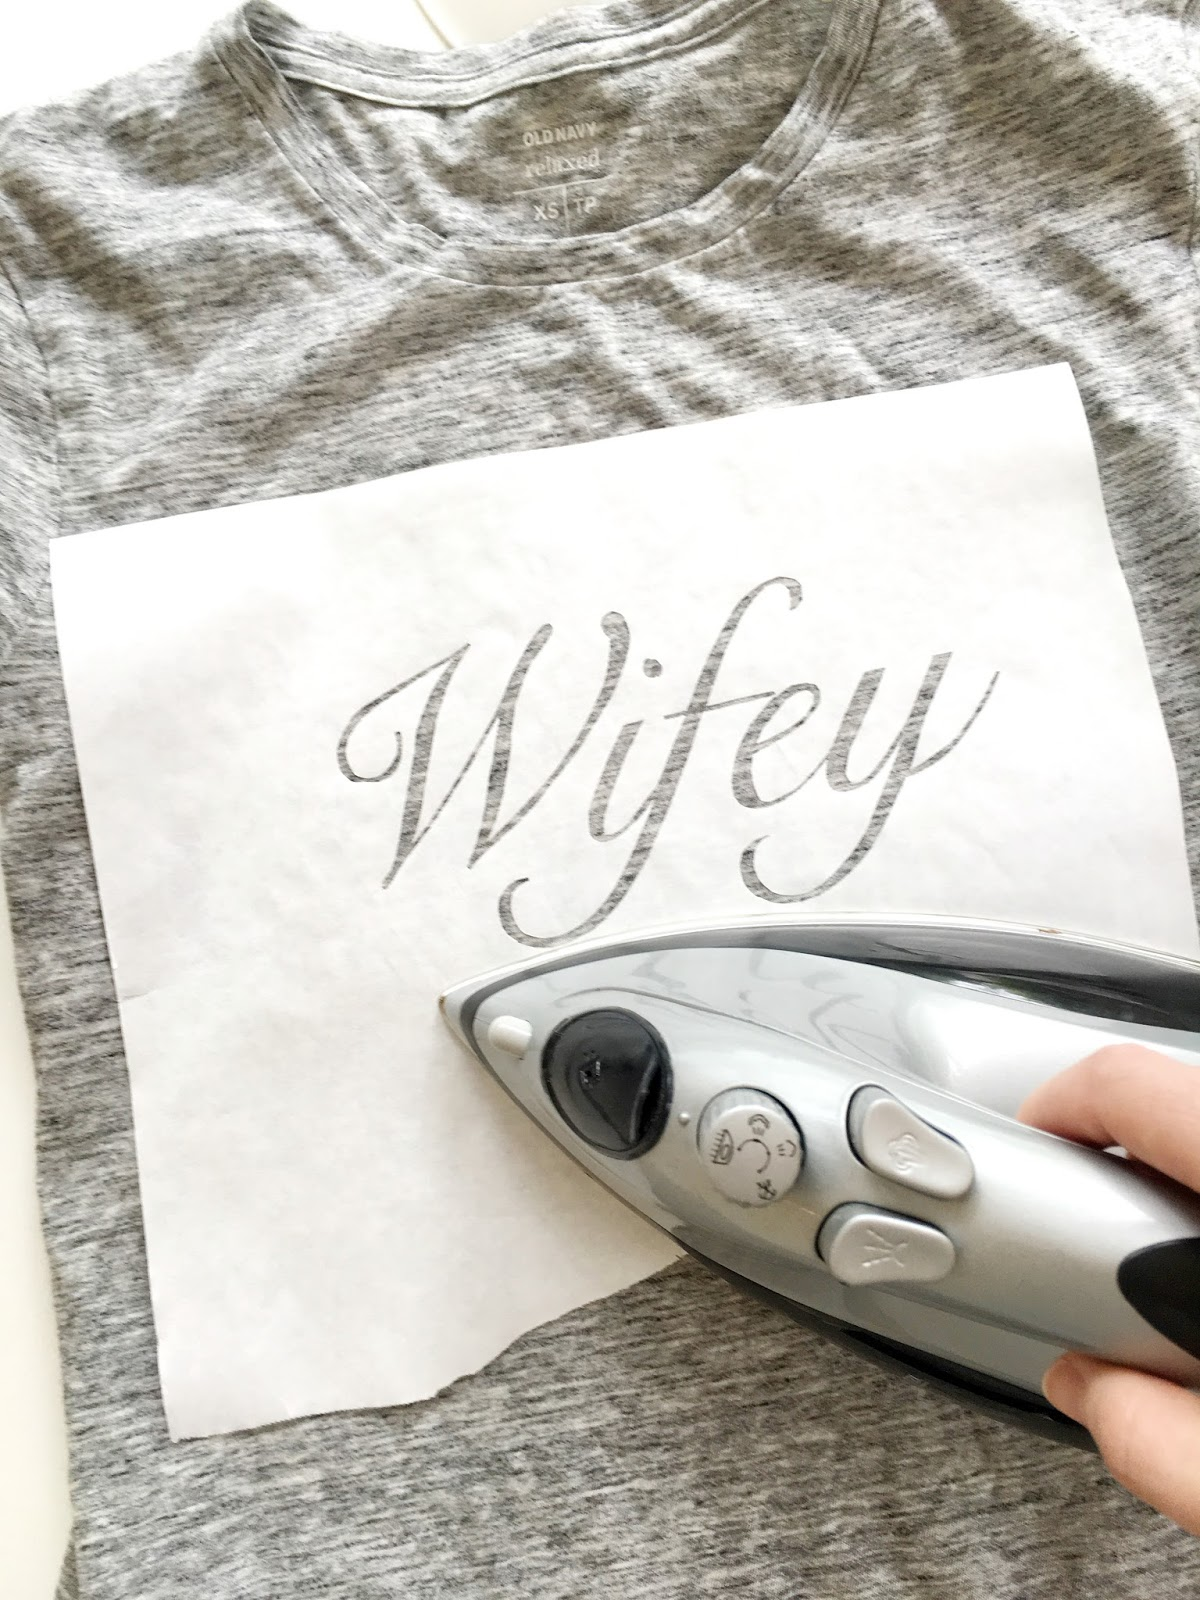 Do it yourself divas diy wifey and hubby t shirts for wedding diy wifey and hubby t shirts for wedding honeymoon or anniversary solutioingenieria Image collections